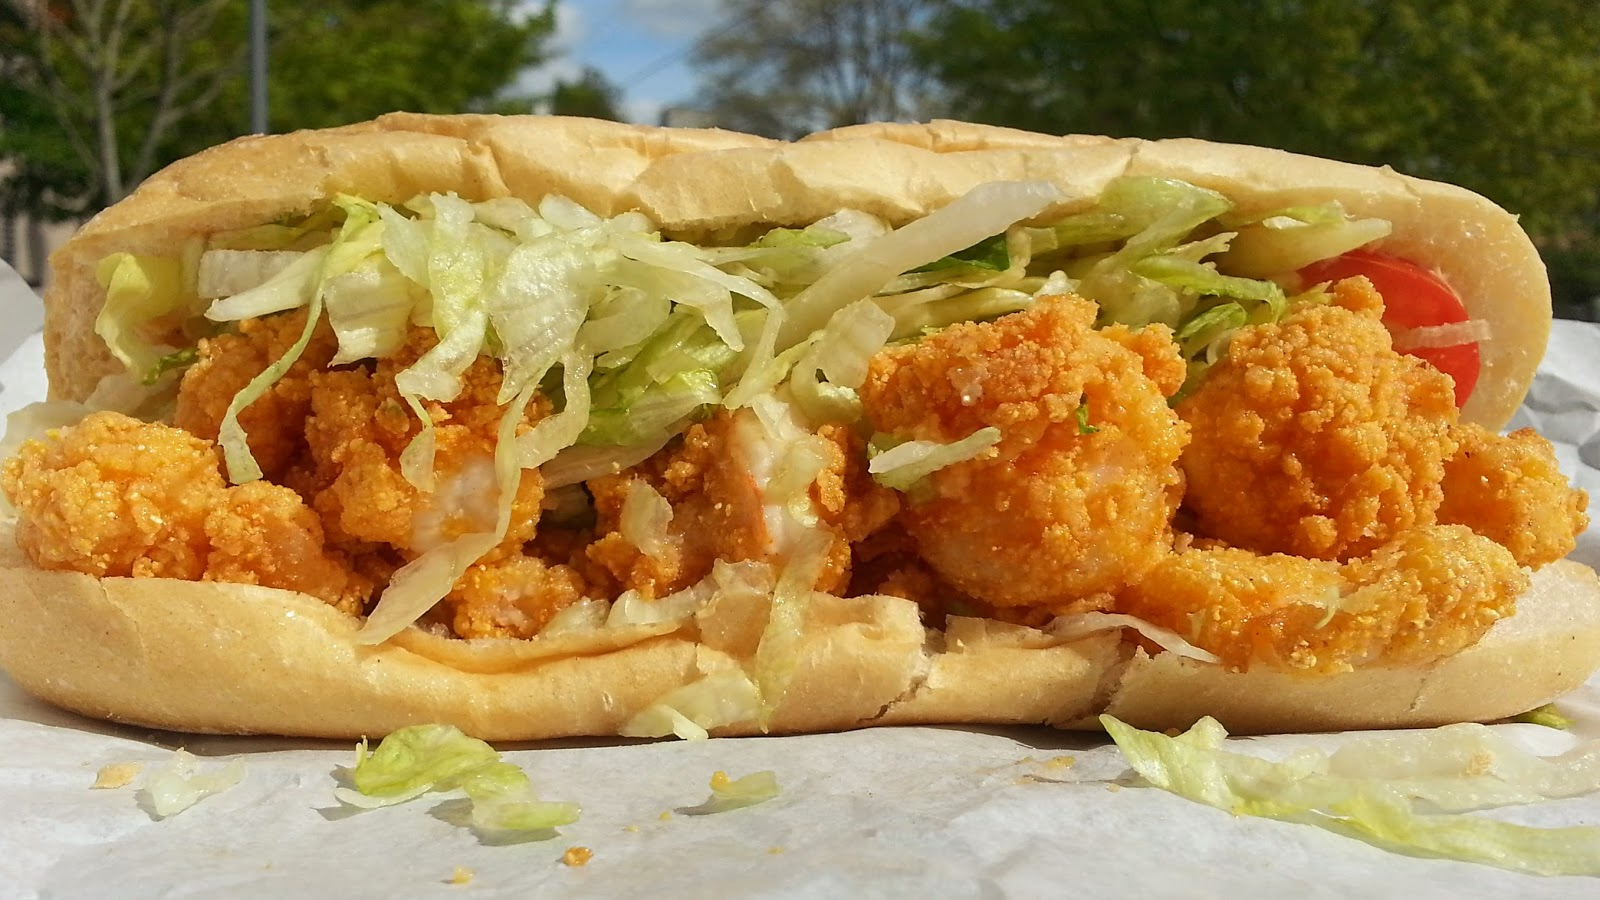 Shrimp Sandwich Po Boy Sandwich of the week: shrimp